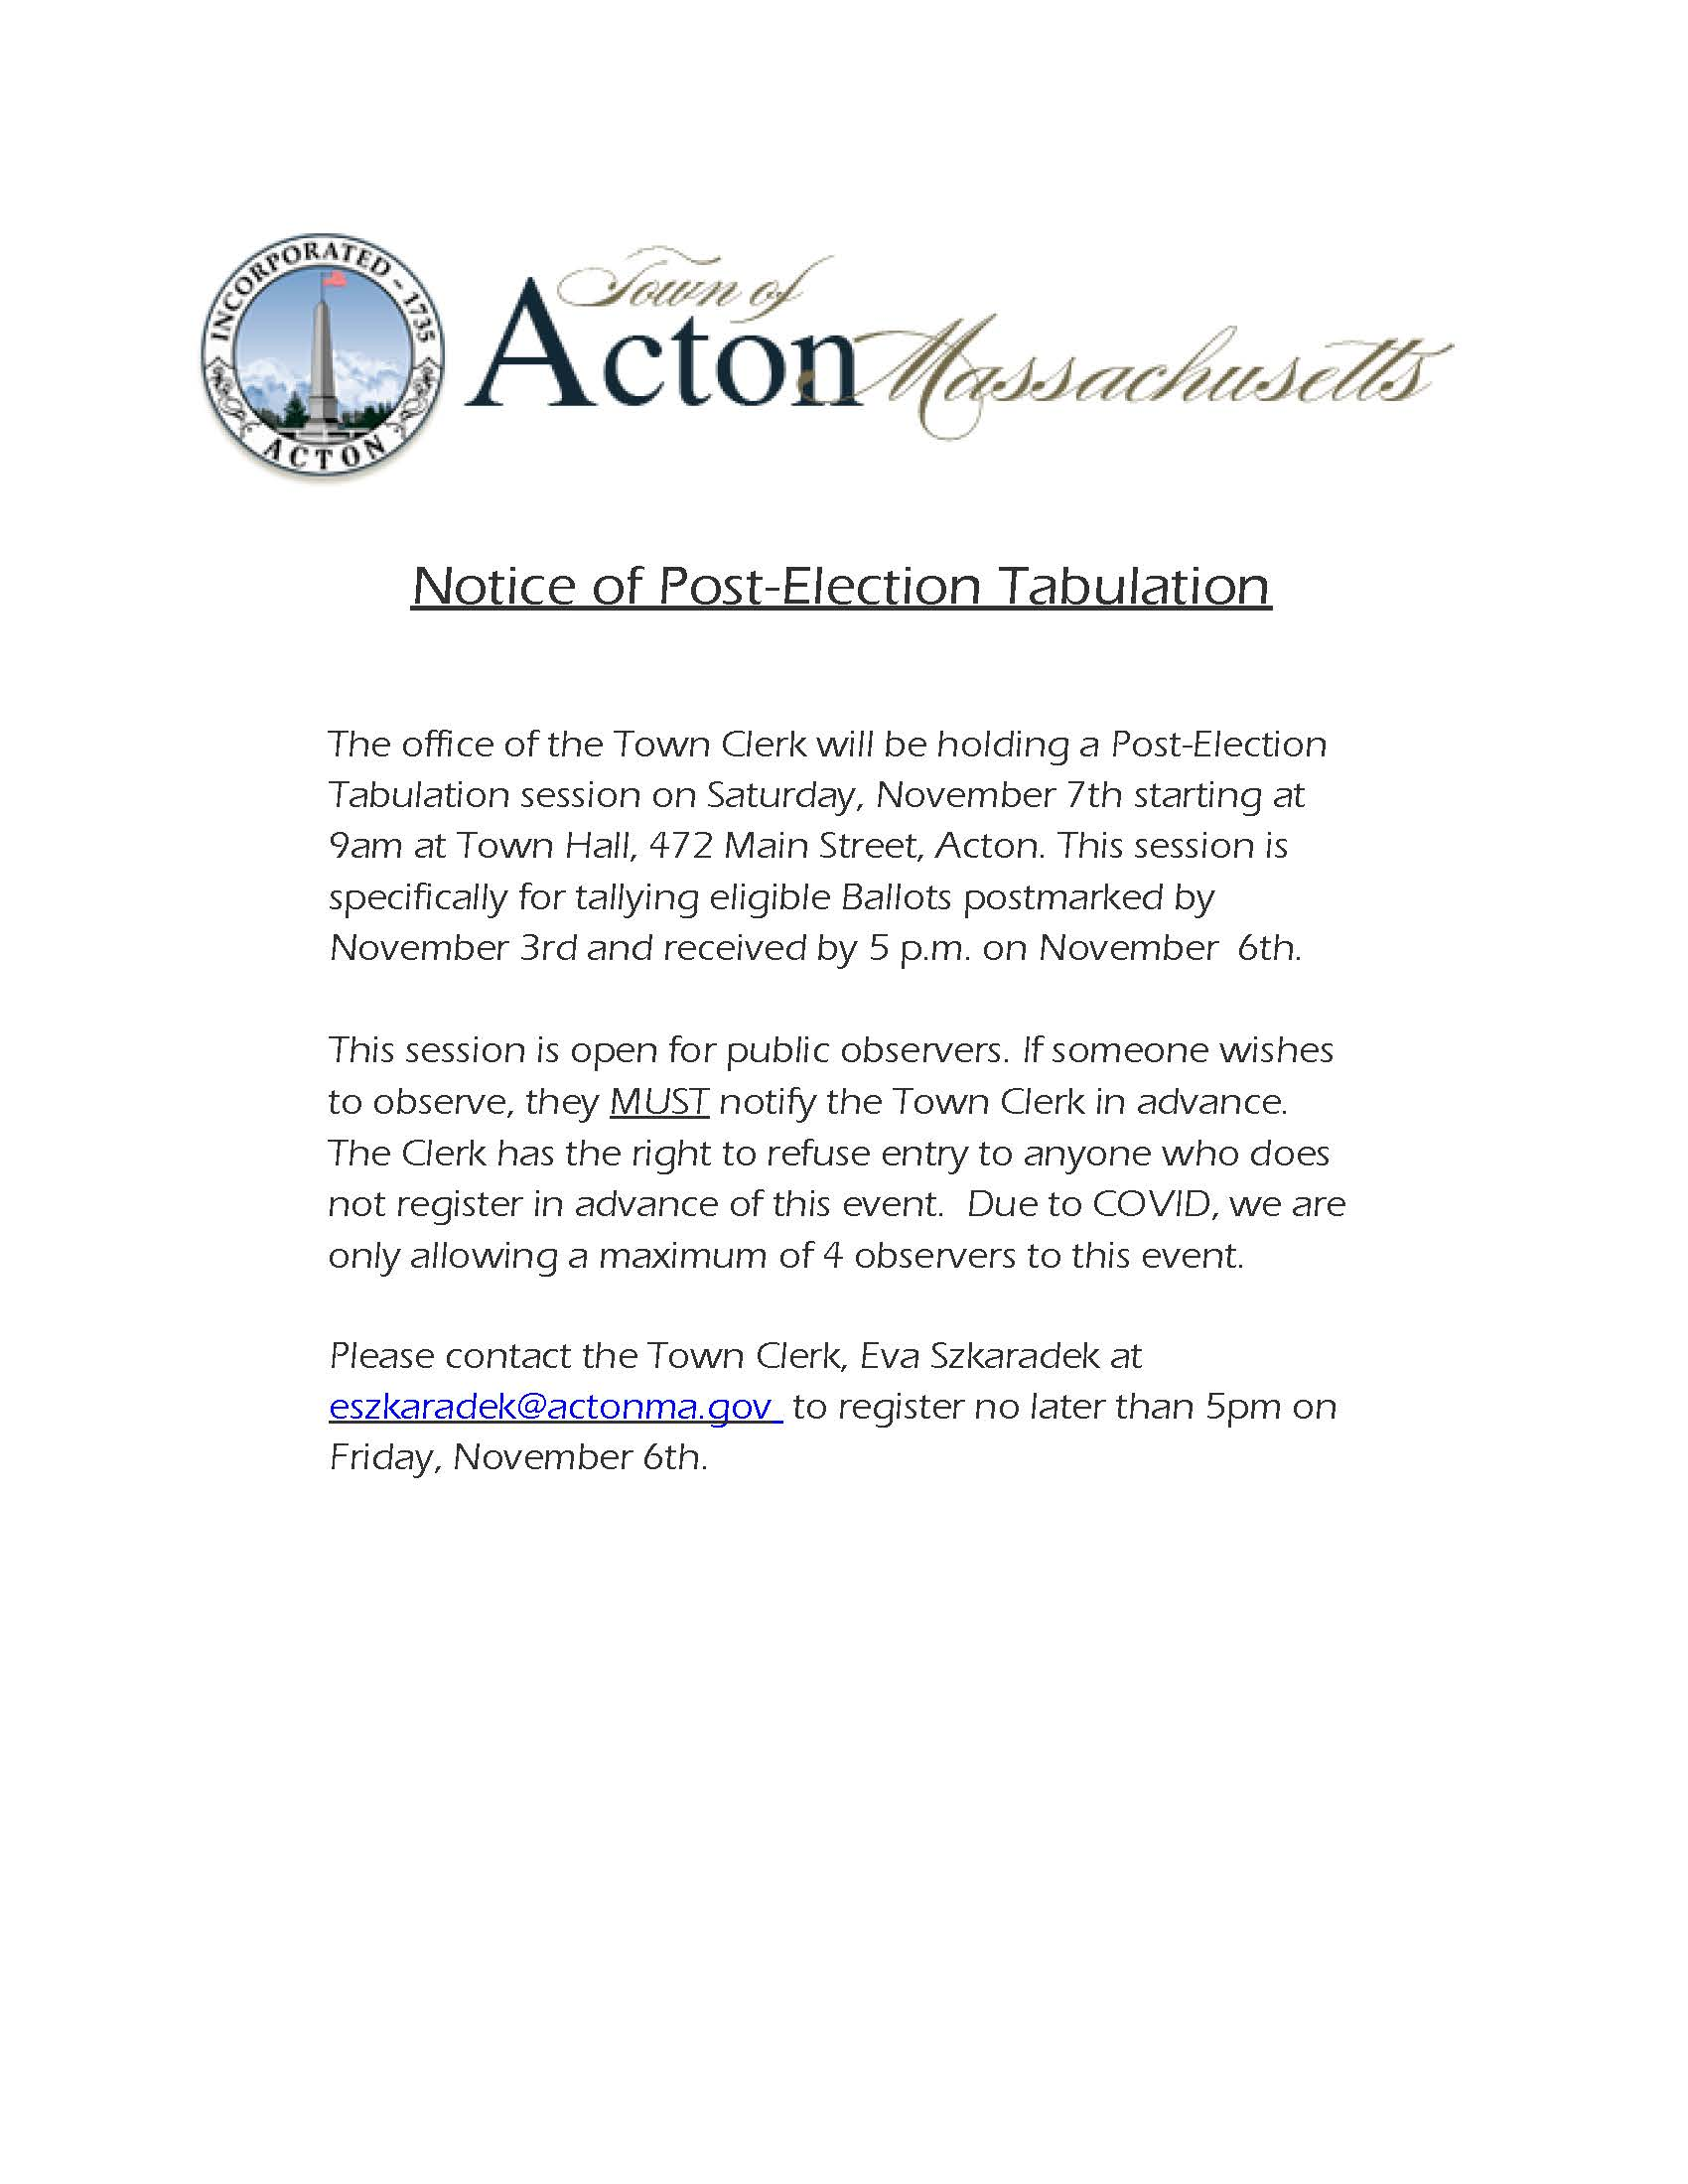 Notice of Post Election Tabulation